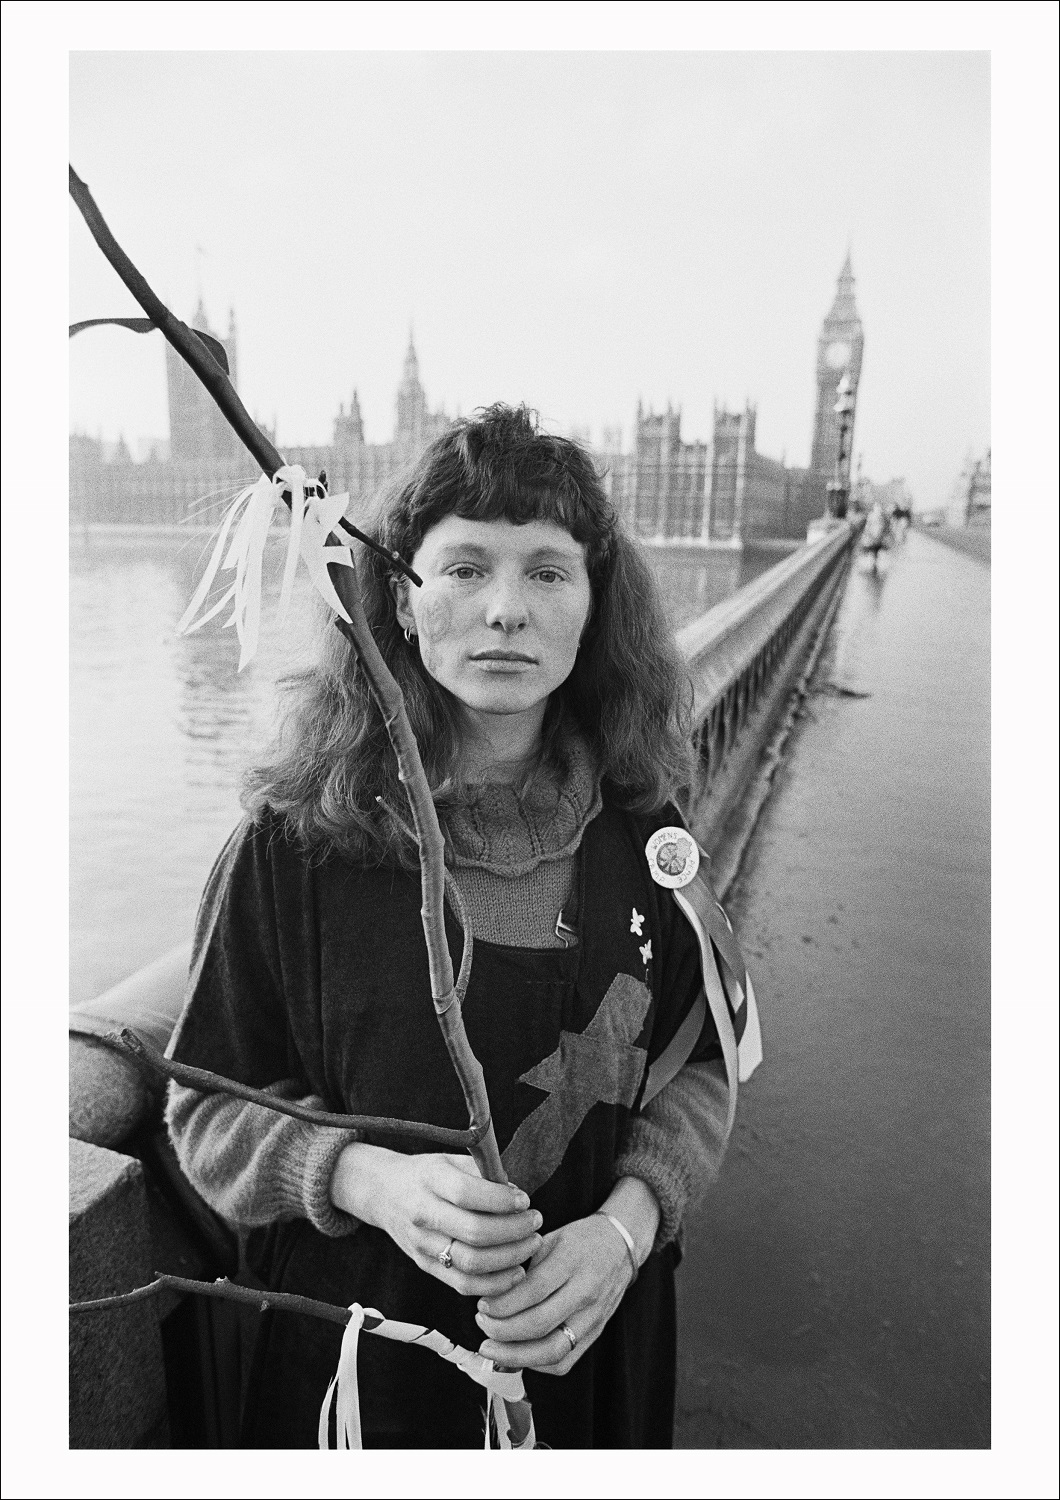 A protester from the Women's Peace Camp at RAF/USAF Greenham Common after keening in Parliament Square, Westminster, London, 1982